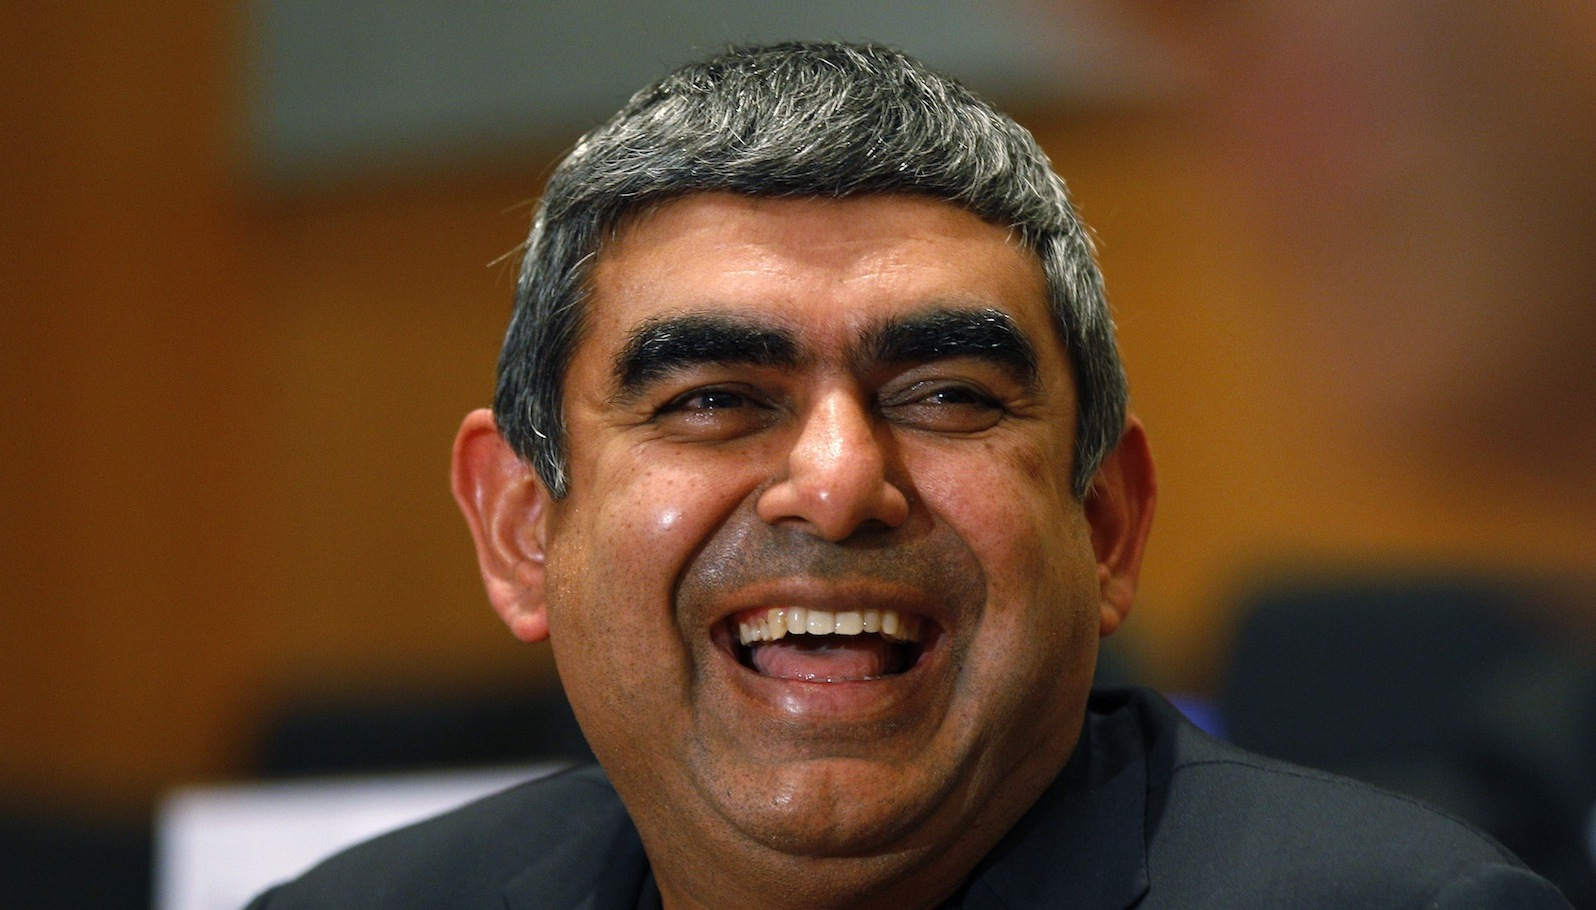 Infosys new Chief Executive Officer and Managing Director Vishal Sikka smiles during a press conference at the company's headquarters in Bangalore, India, Thursday, June 12, 2014.